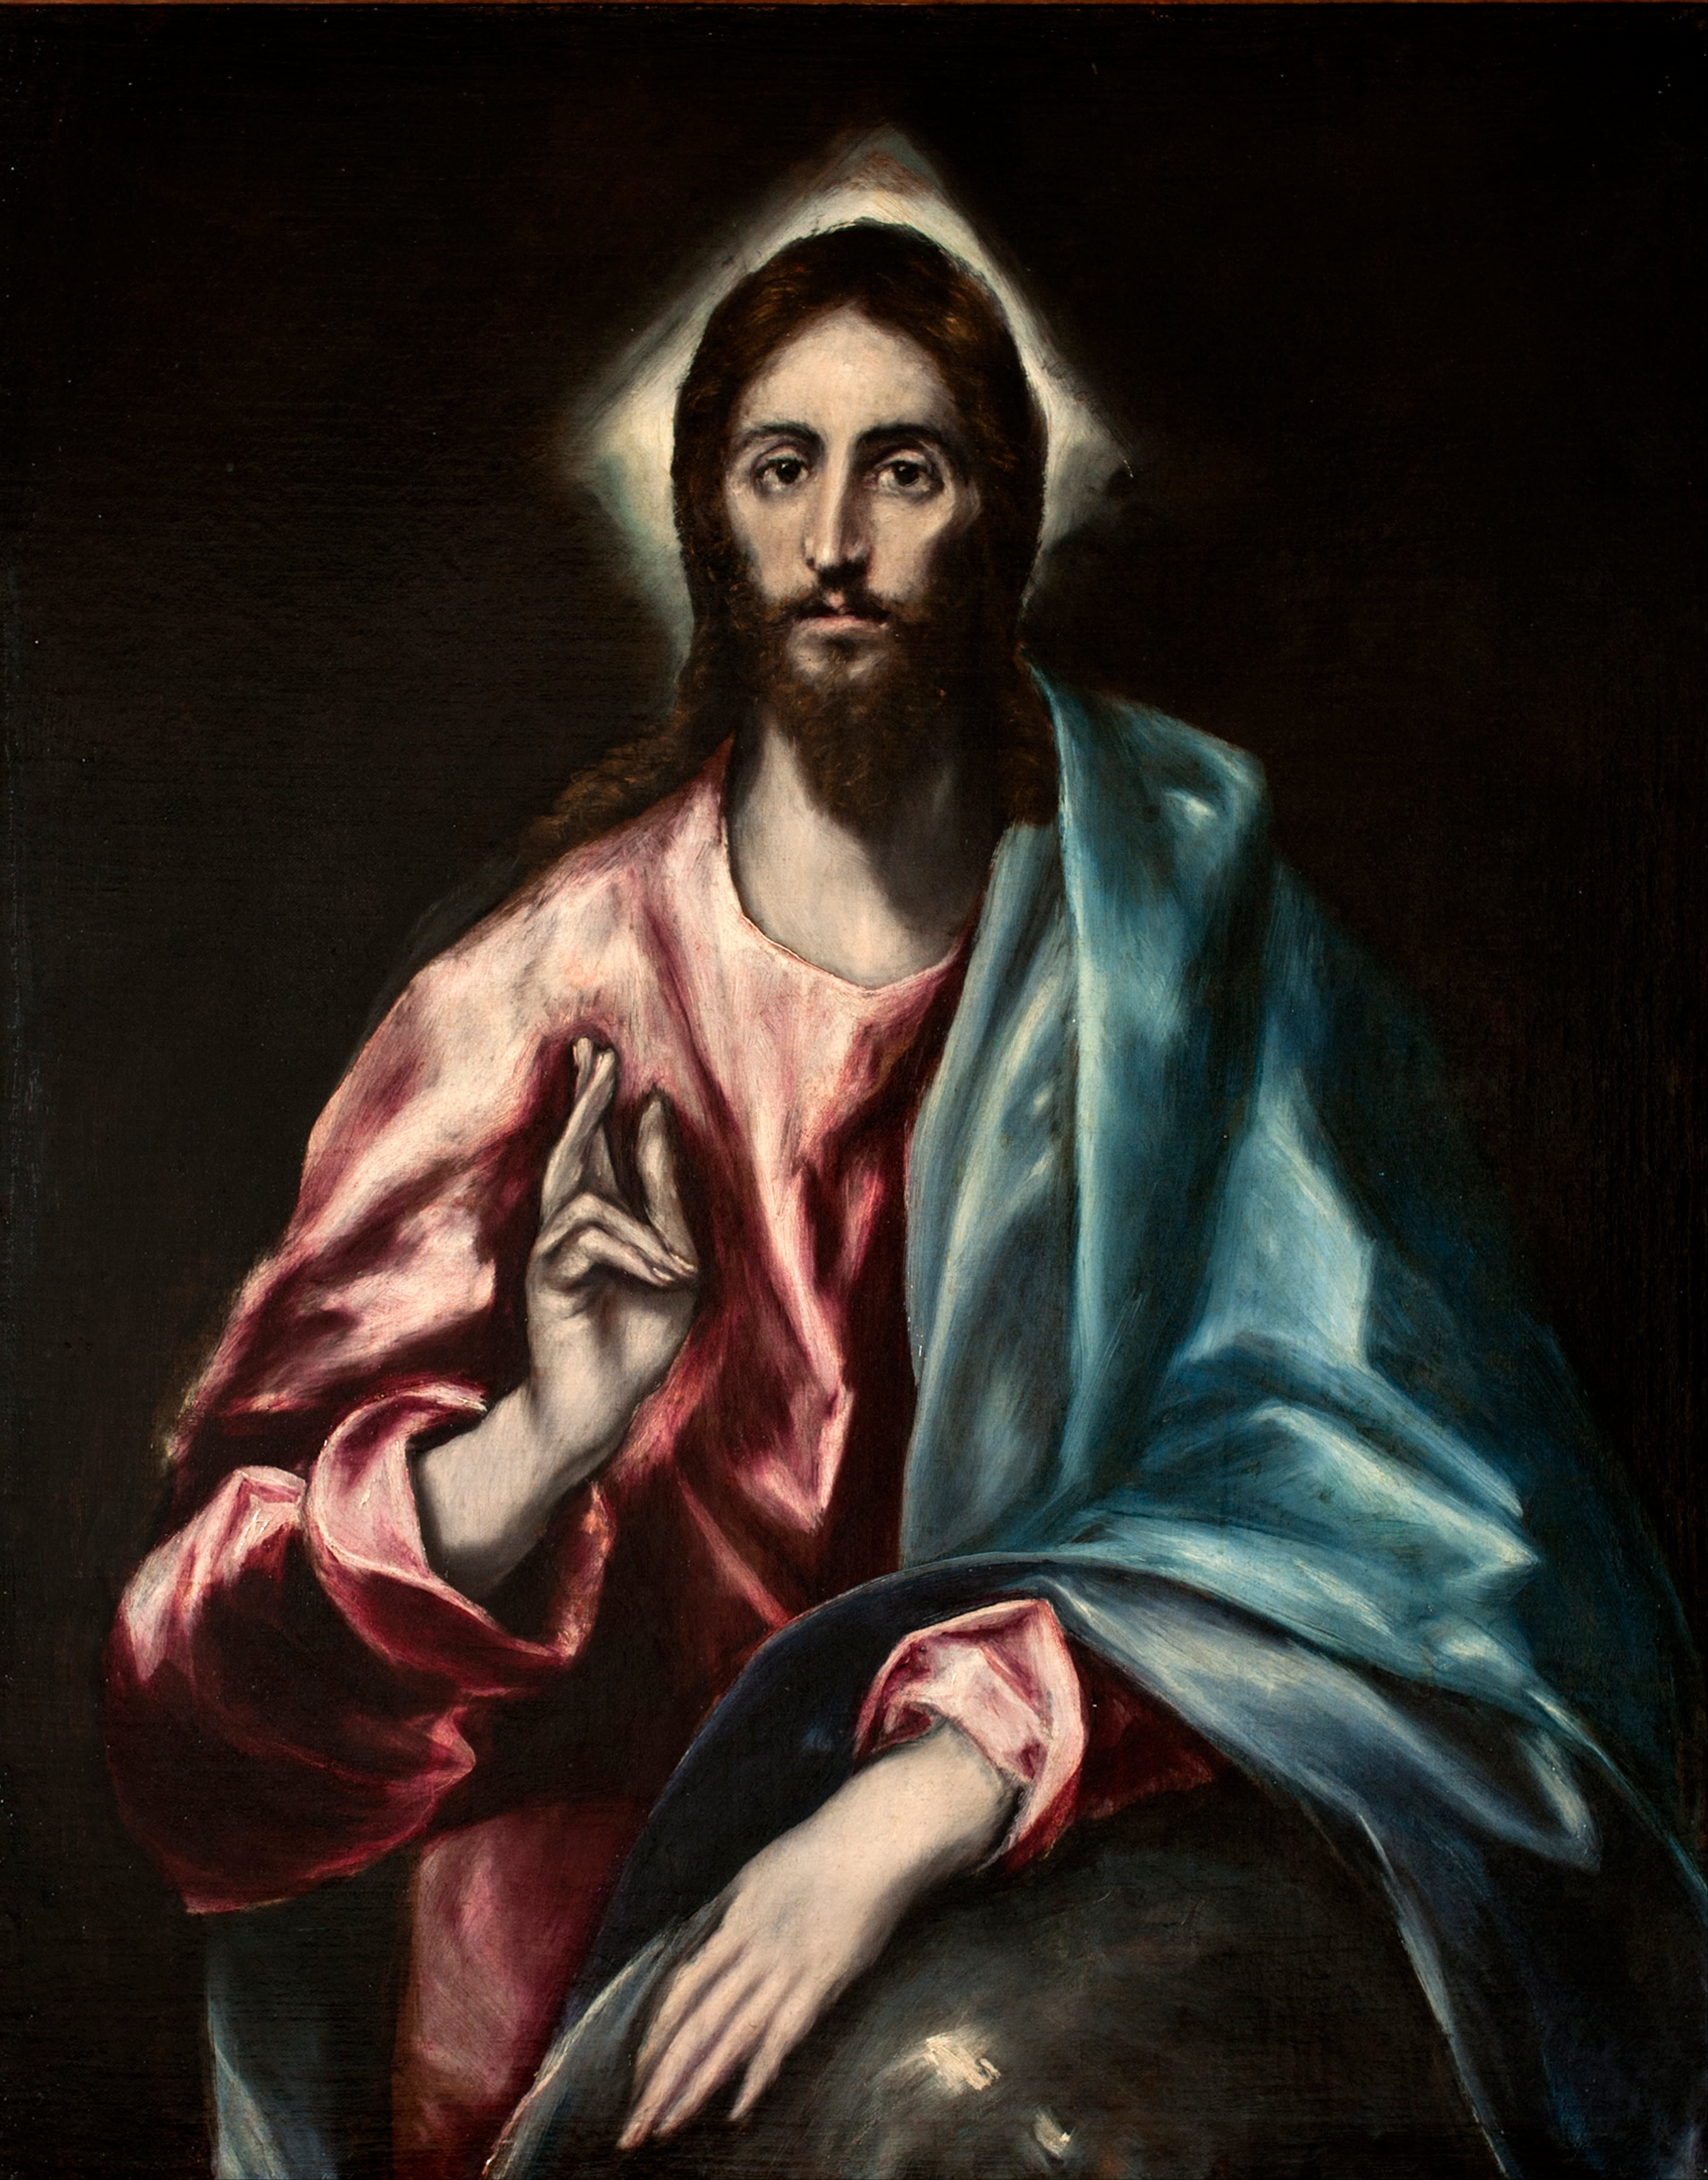 http://commons.wikimedia.org/wiki/File%3AEl_Greco_-_Christ_as_Saviour_-_Google_Art_Project.jpg